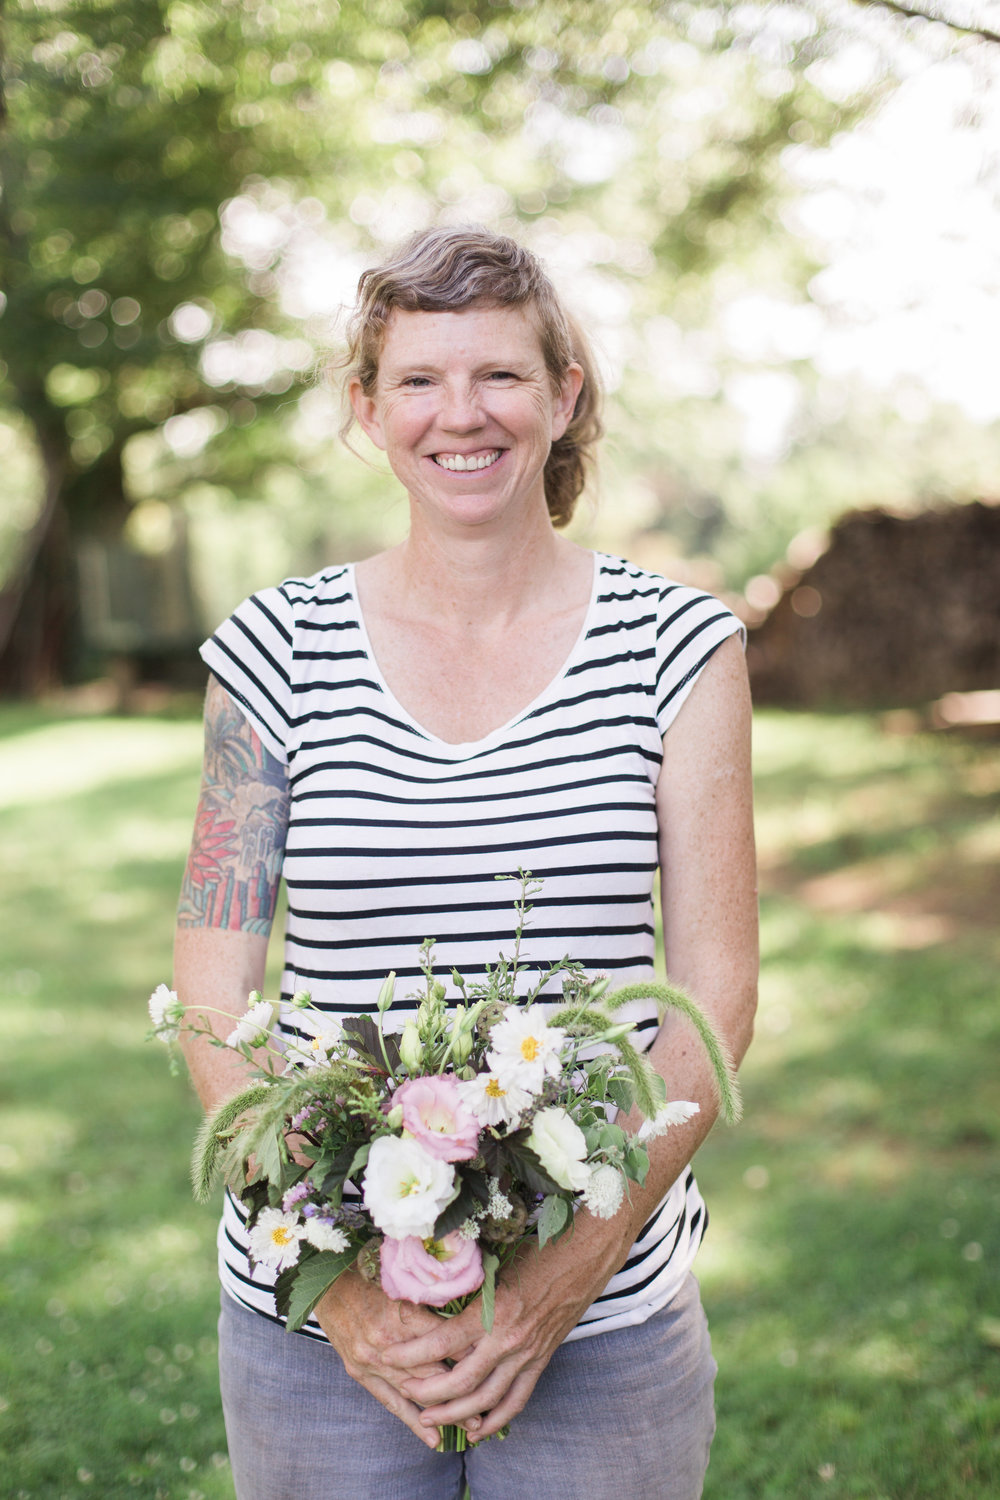 Kelly Morrison of Color Fields Farm is trailblazing the way in Durham, NC- she just started a flower hub where florists can buy from multiple farmers at once! And, she used to be my manager when we both worked at a farm in PA.